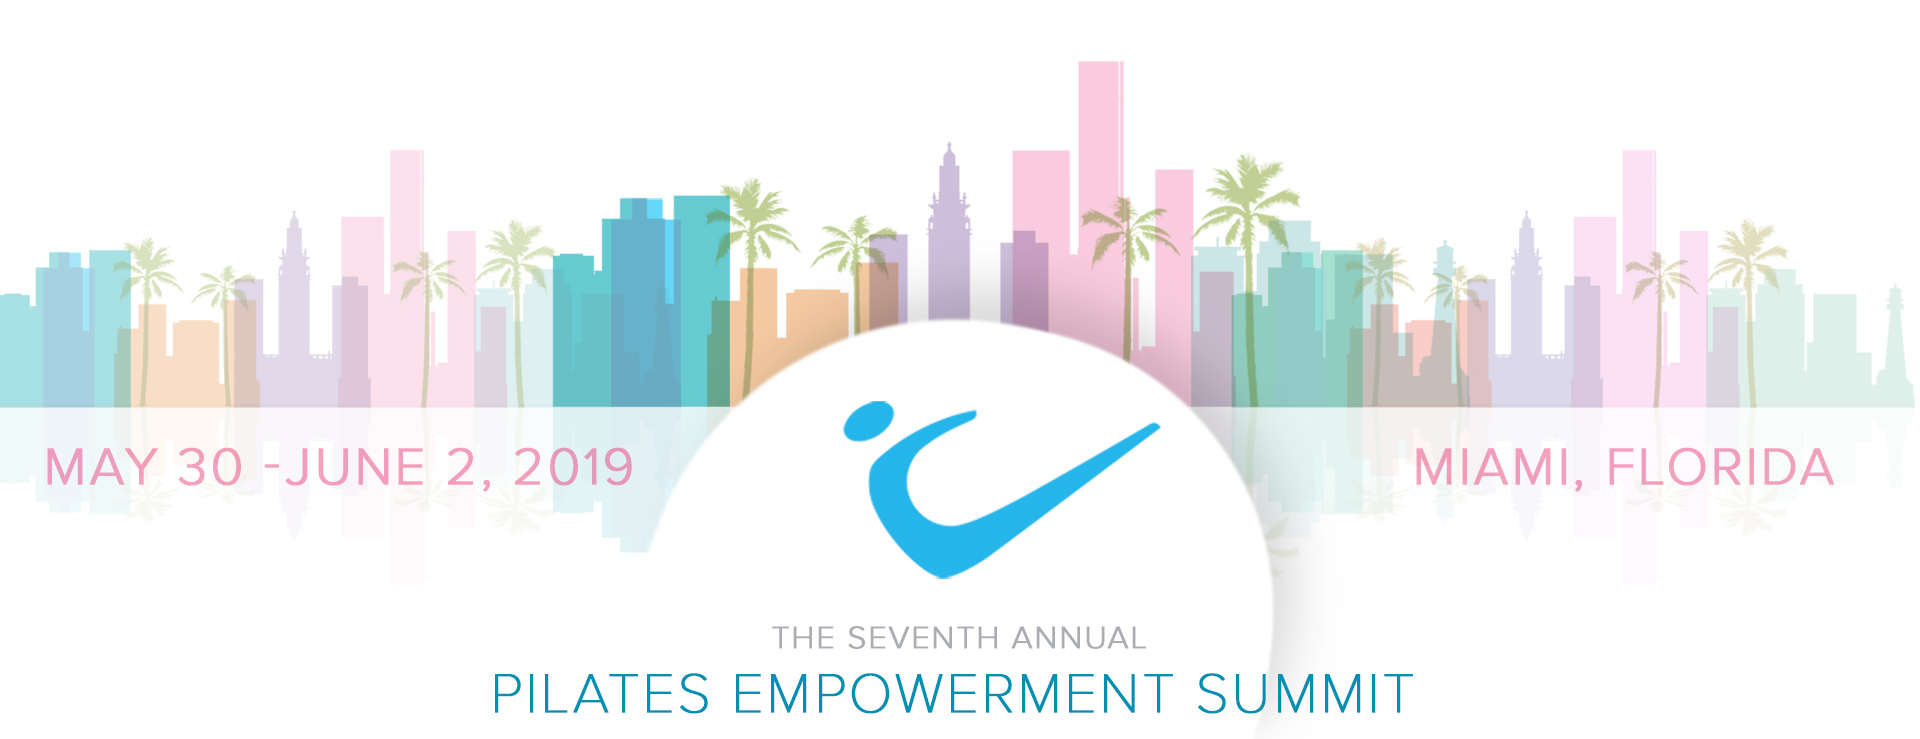 Pilates Empowerment Summit 2019